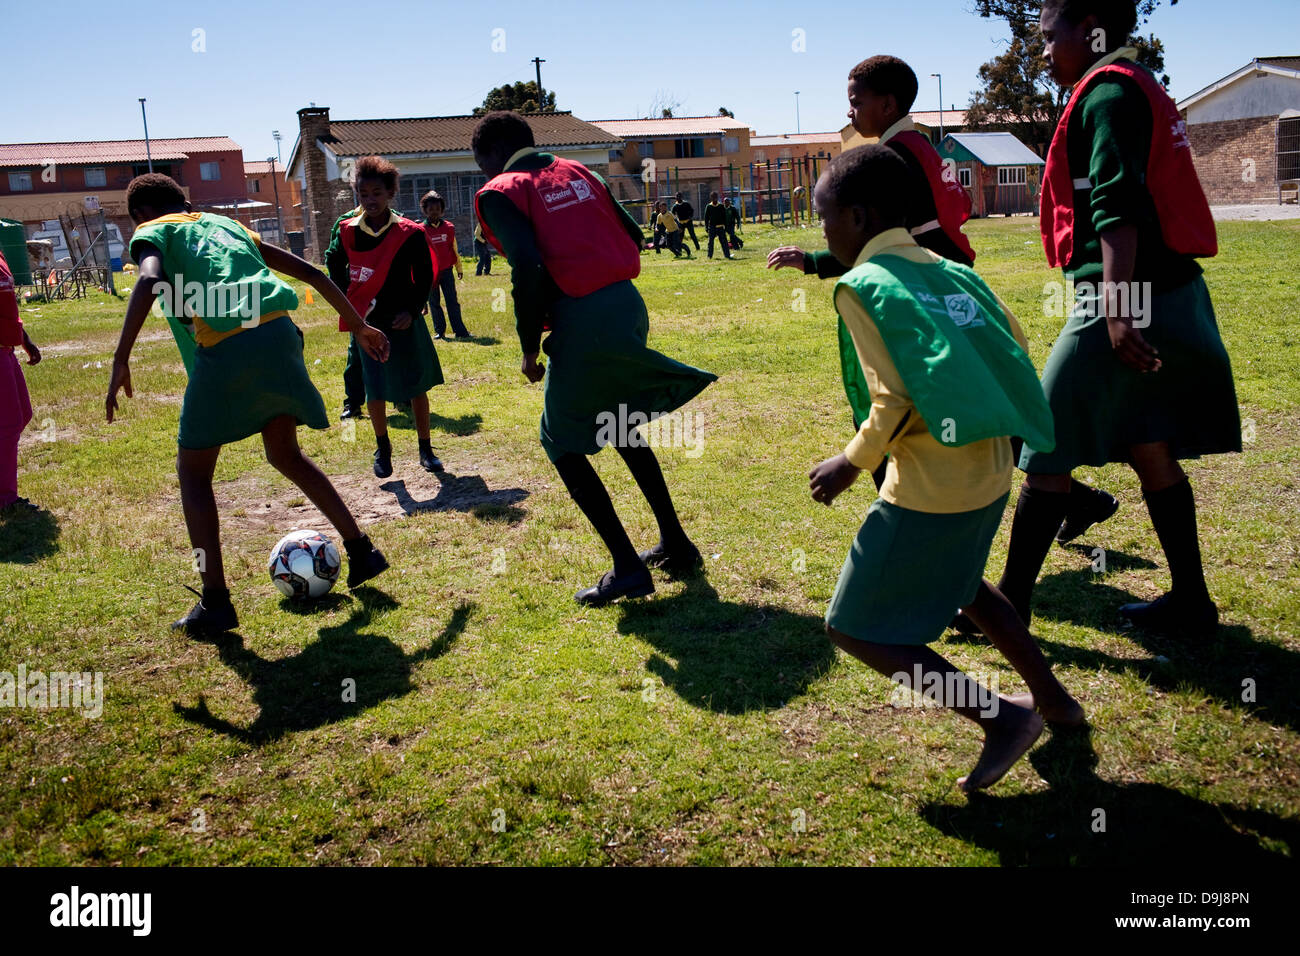 Grassroot Soccer uses power soccer to educate inspire mobilize communities to stop spread HIV Girls playing football - Stock Image